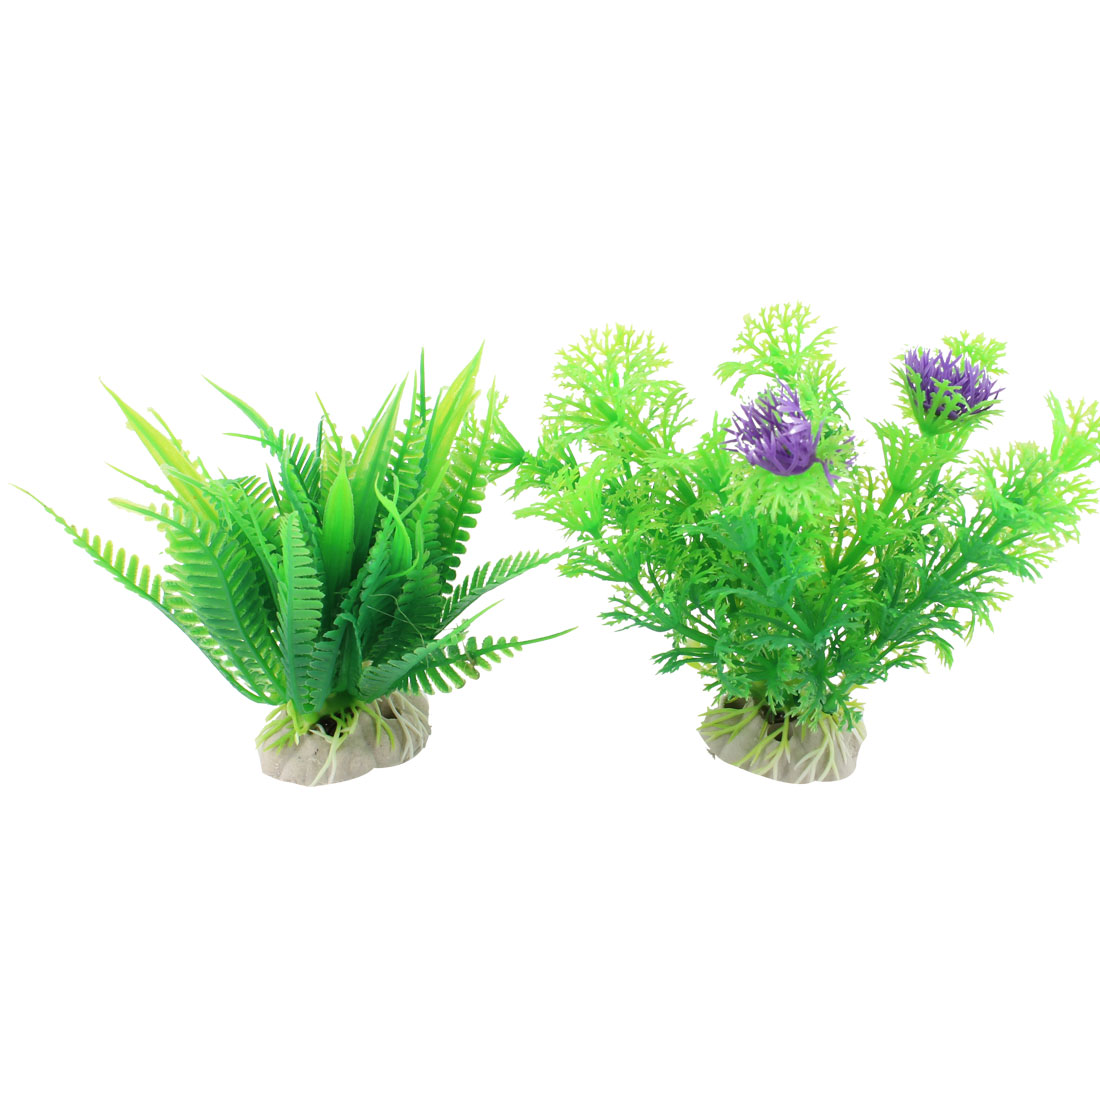 "2 Pcs 3.9"" High Green Artificial Fish Tank Aquarium Plants w Ceramic Base"